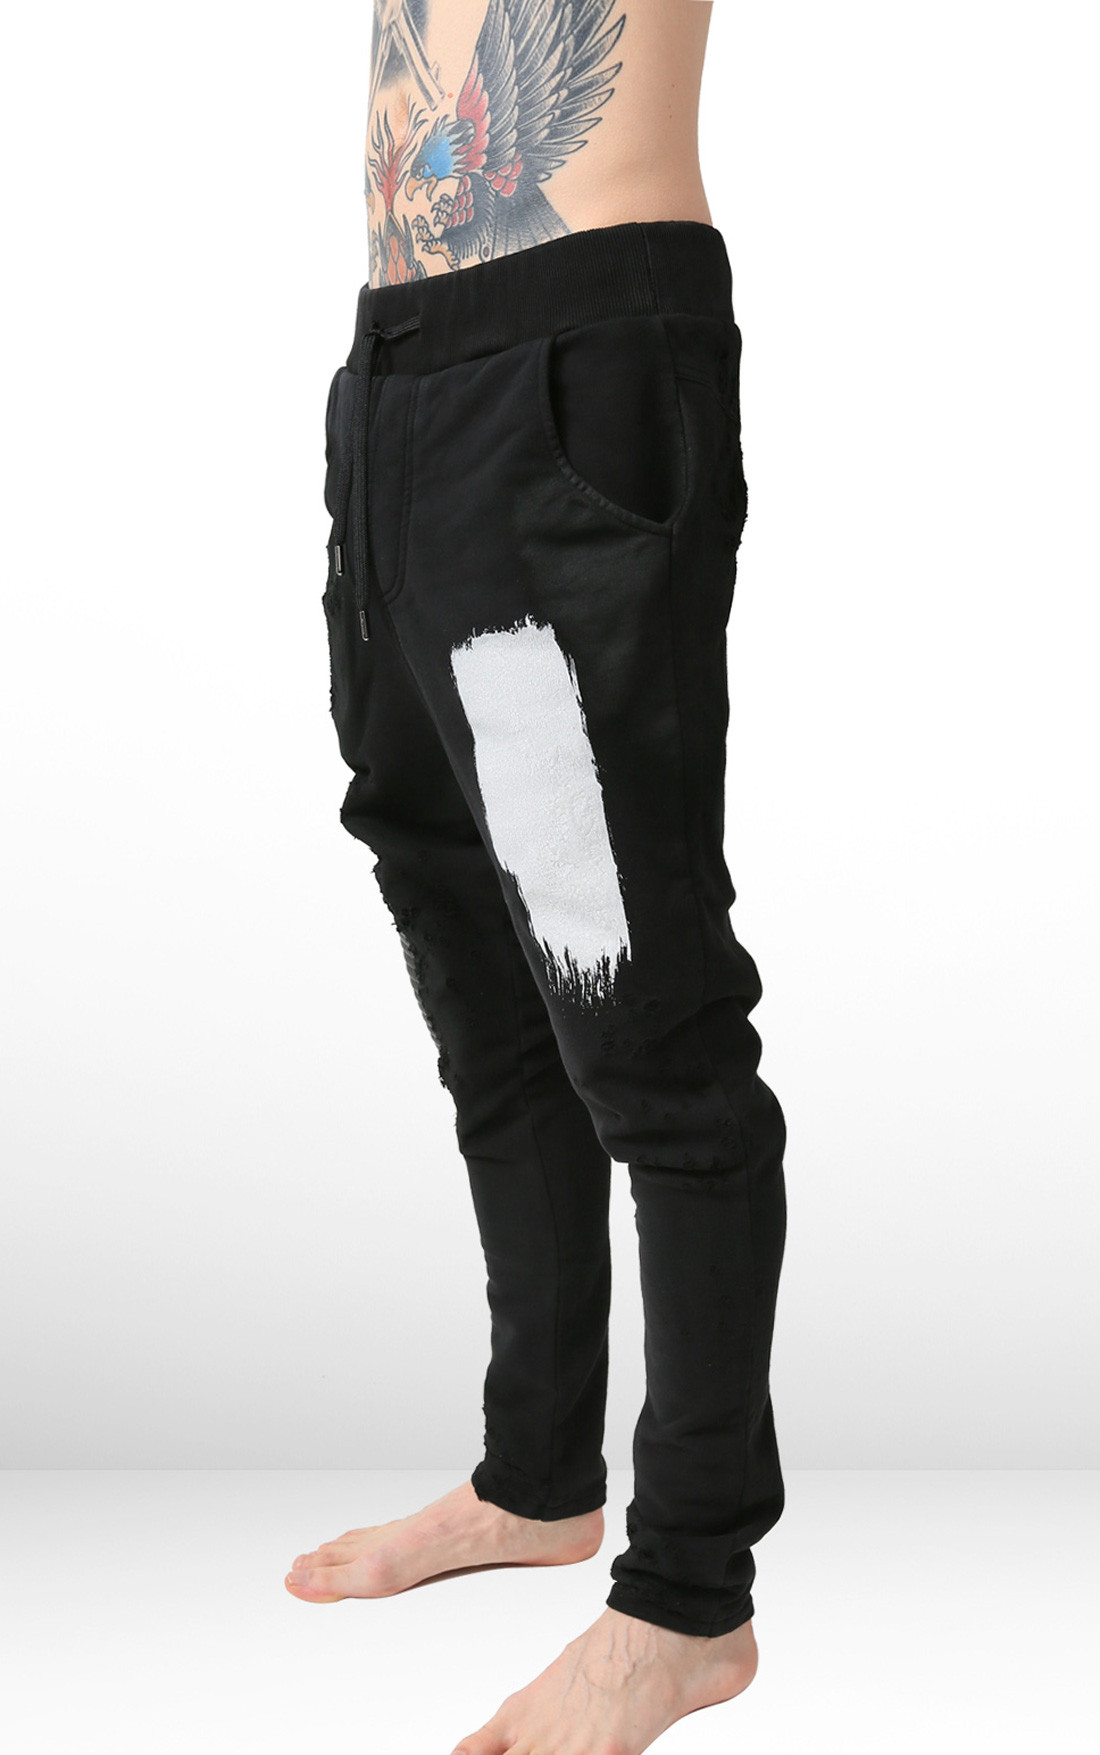 RH45 - Black Sweatpants with Paint and Leather Detail (P402)